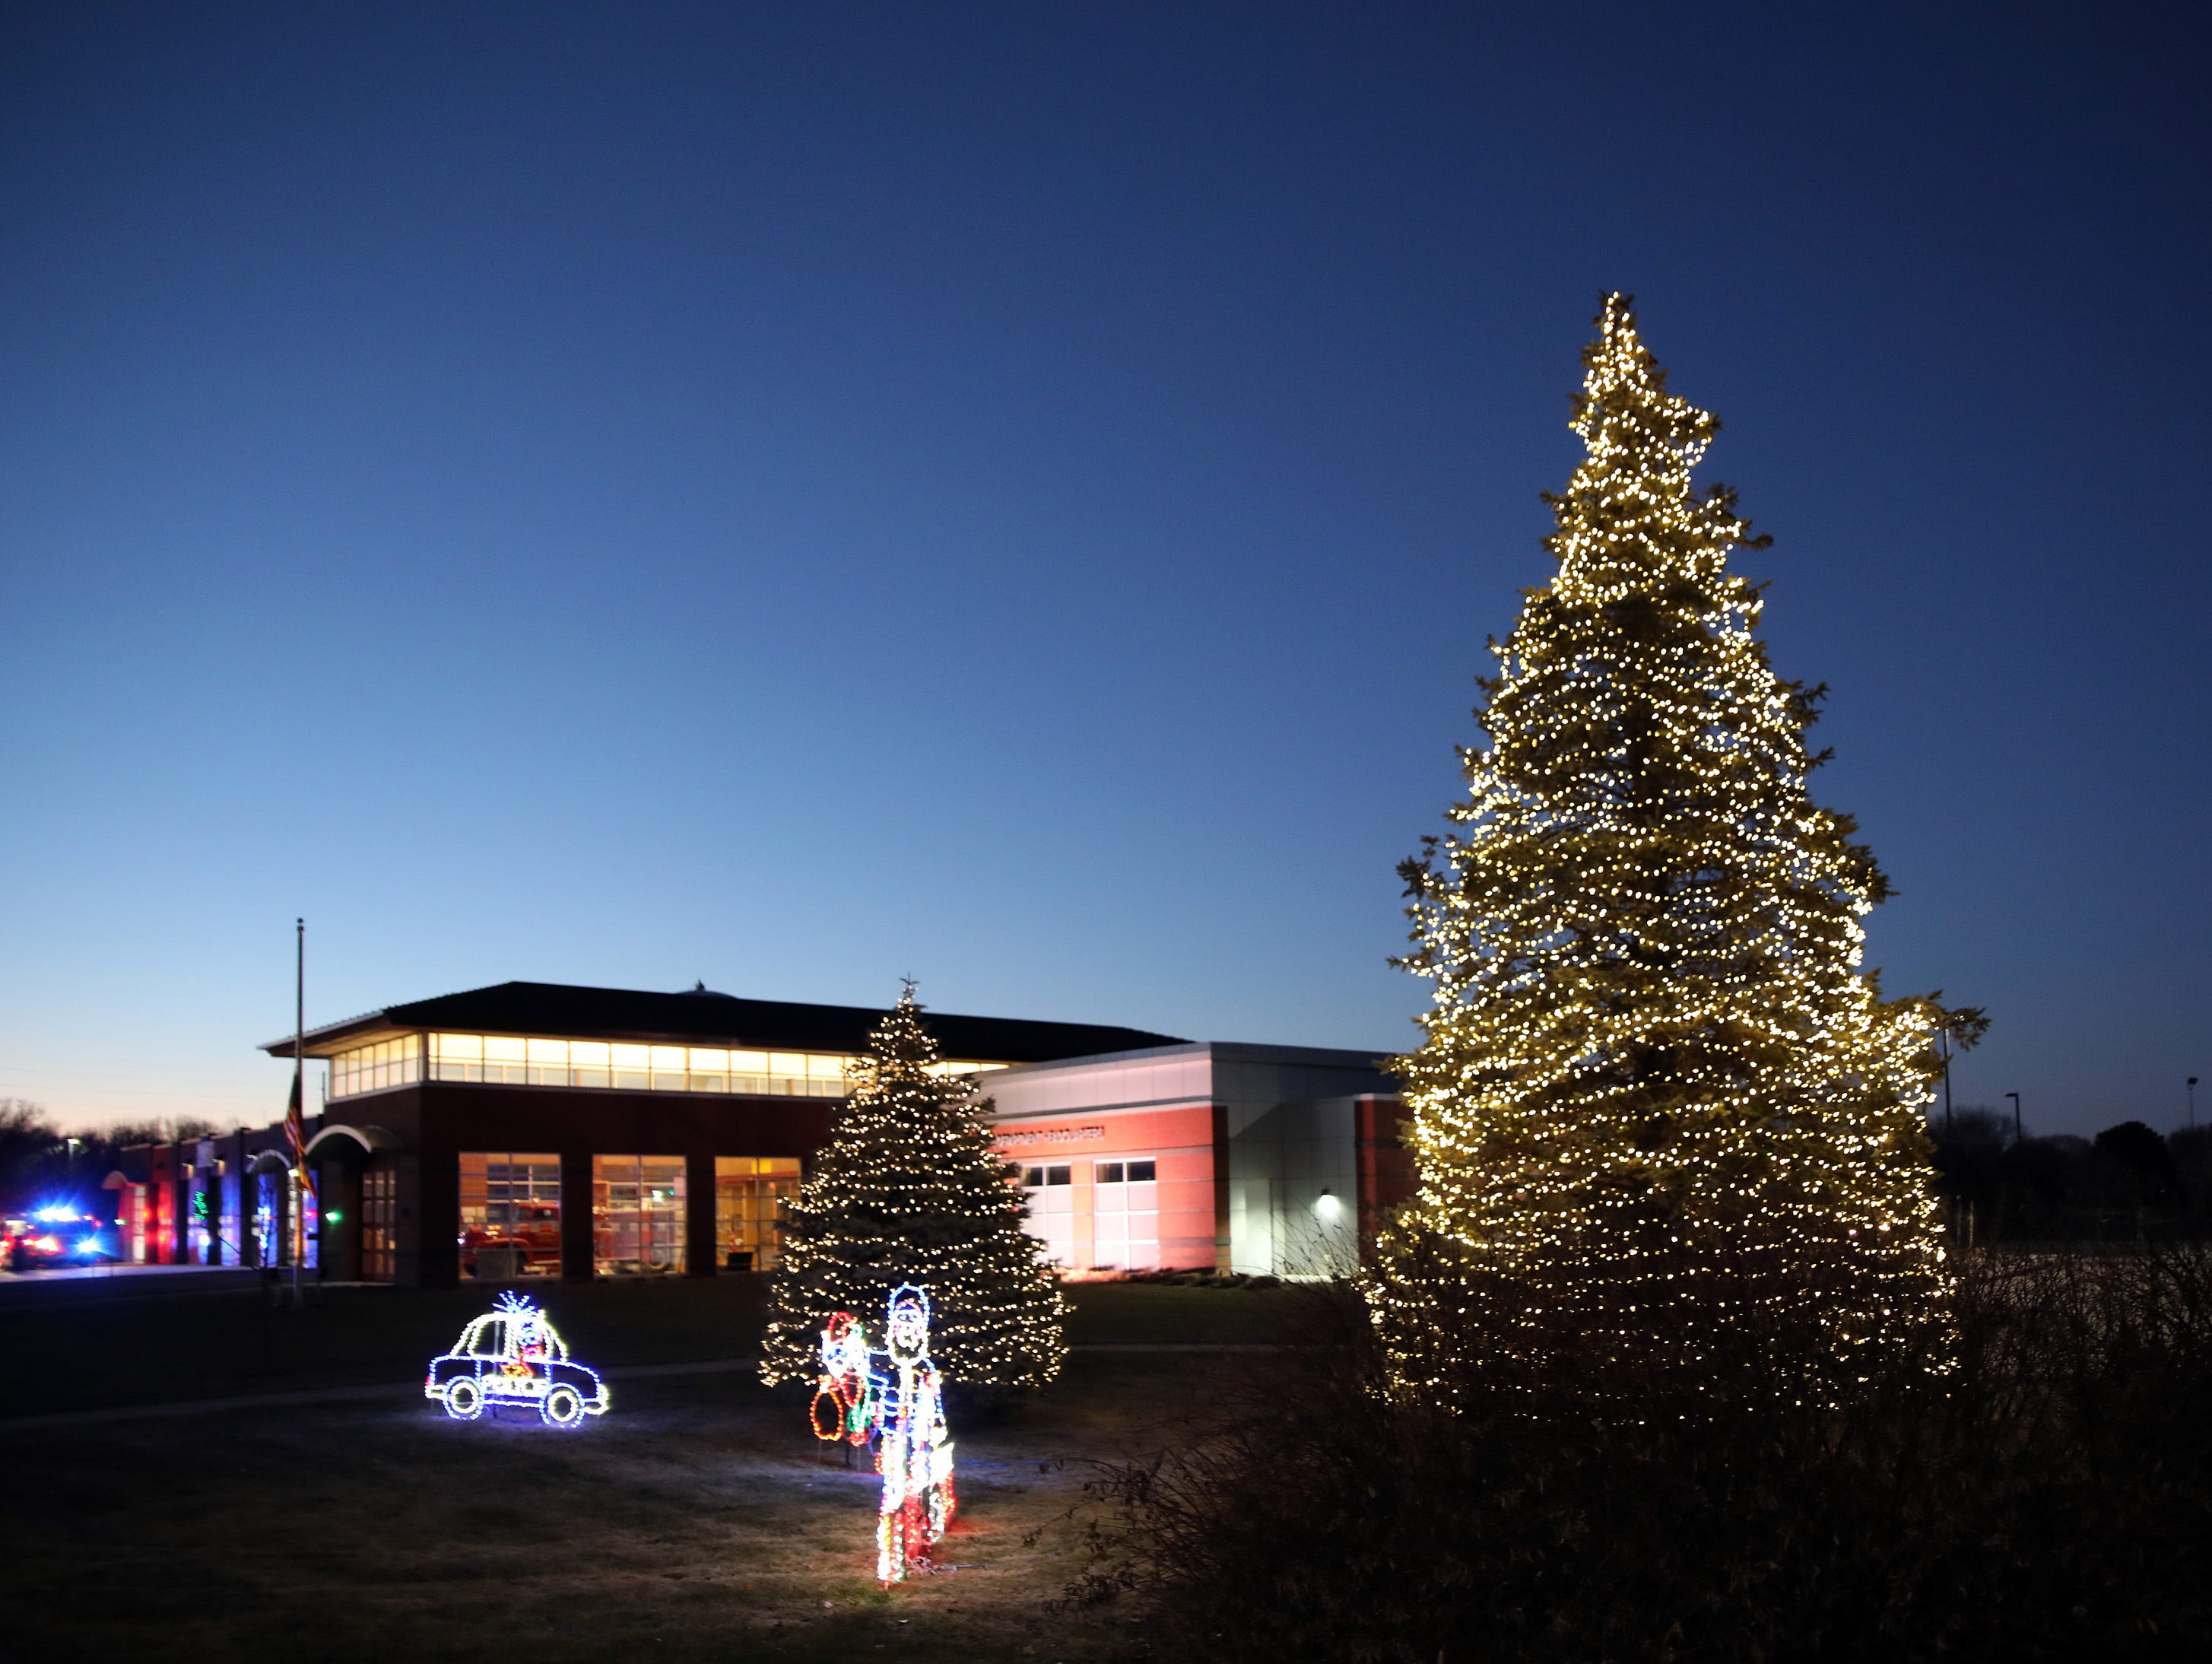 The Ankeny Fire Station is decked for the holidays as gifts are dropped off at Ankeny's fill the truck day during the U.S. Marine Corps Toys for Tots campaign at the Ankeny Fire Station Headquarters on Sunday, Dec. 16, 2018.